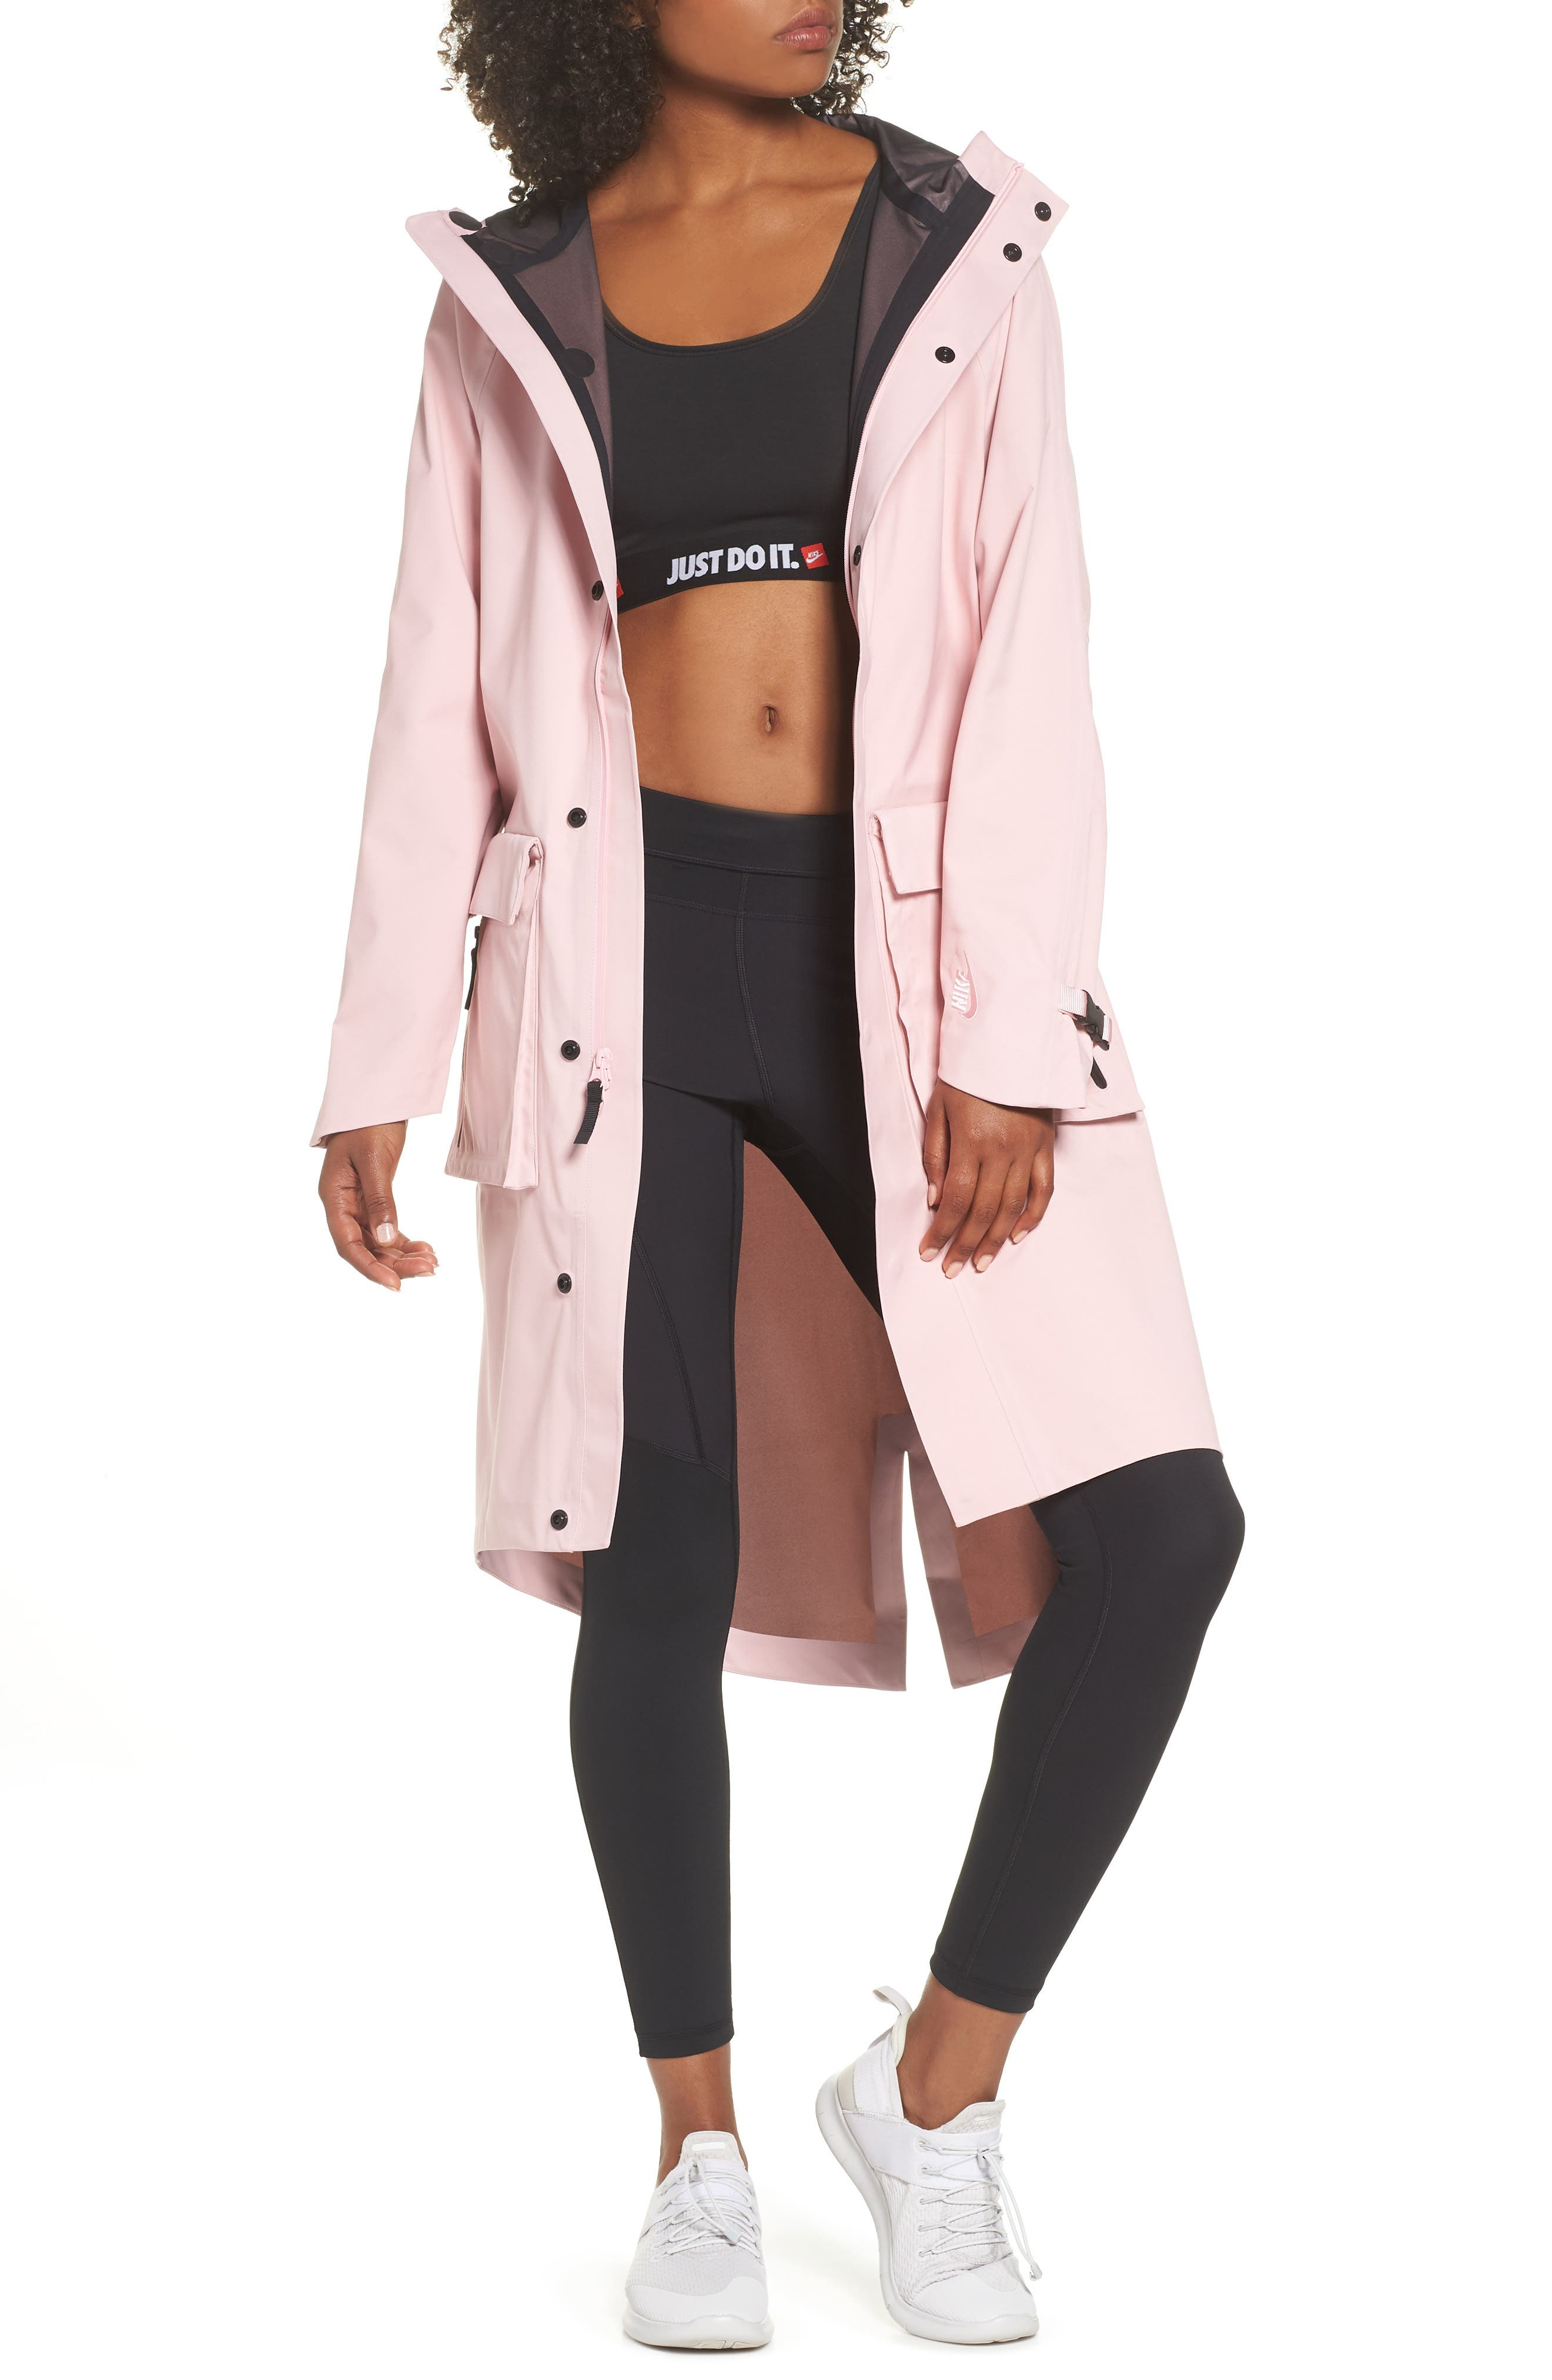 NRG Women's Hooded Anorak,                             Main thumbnail 1, color,                             Arctic Punch/ Arctic Punch